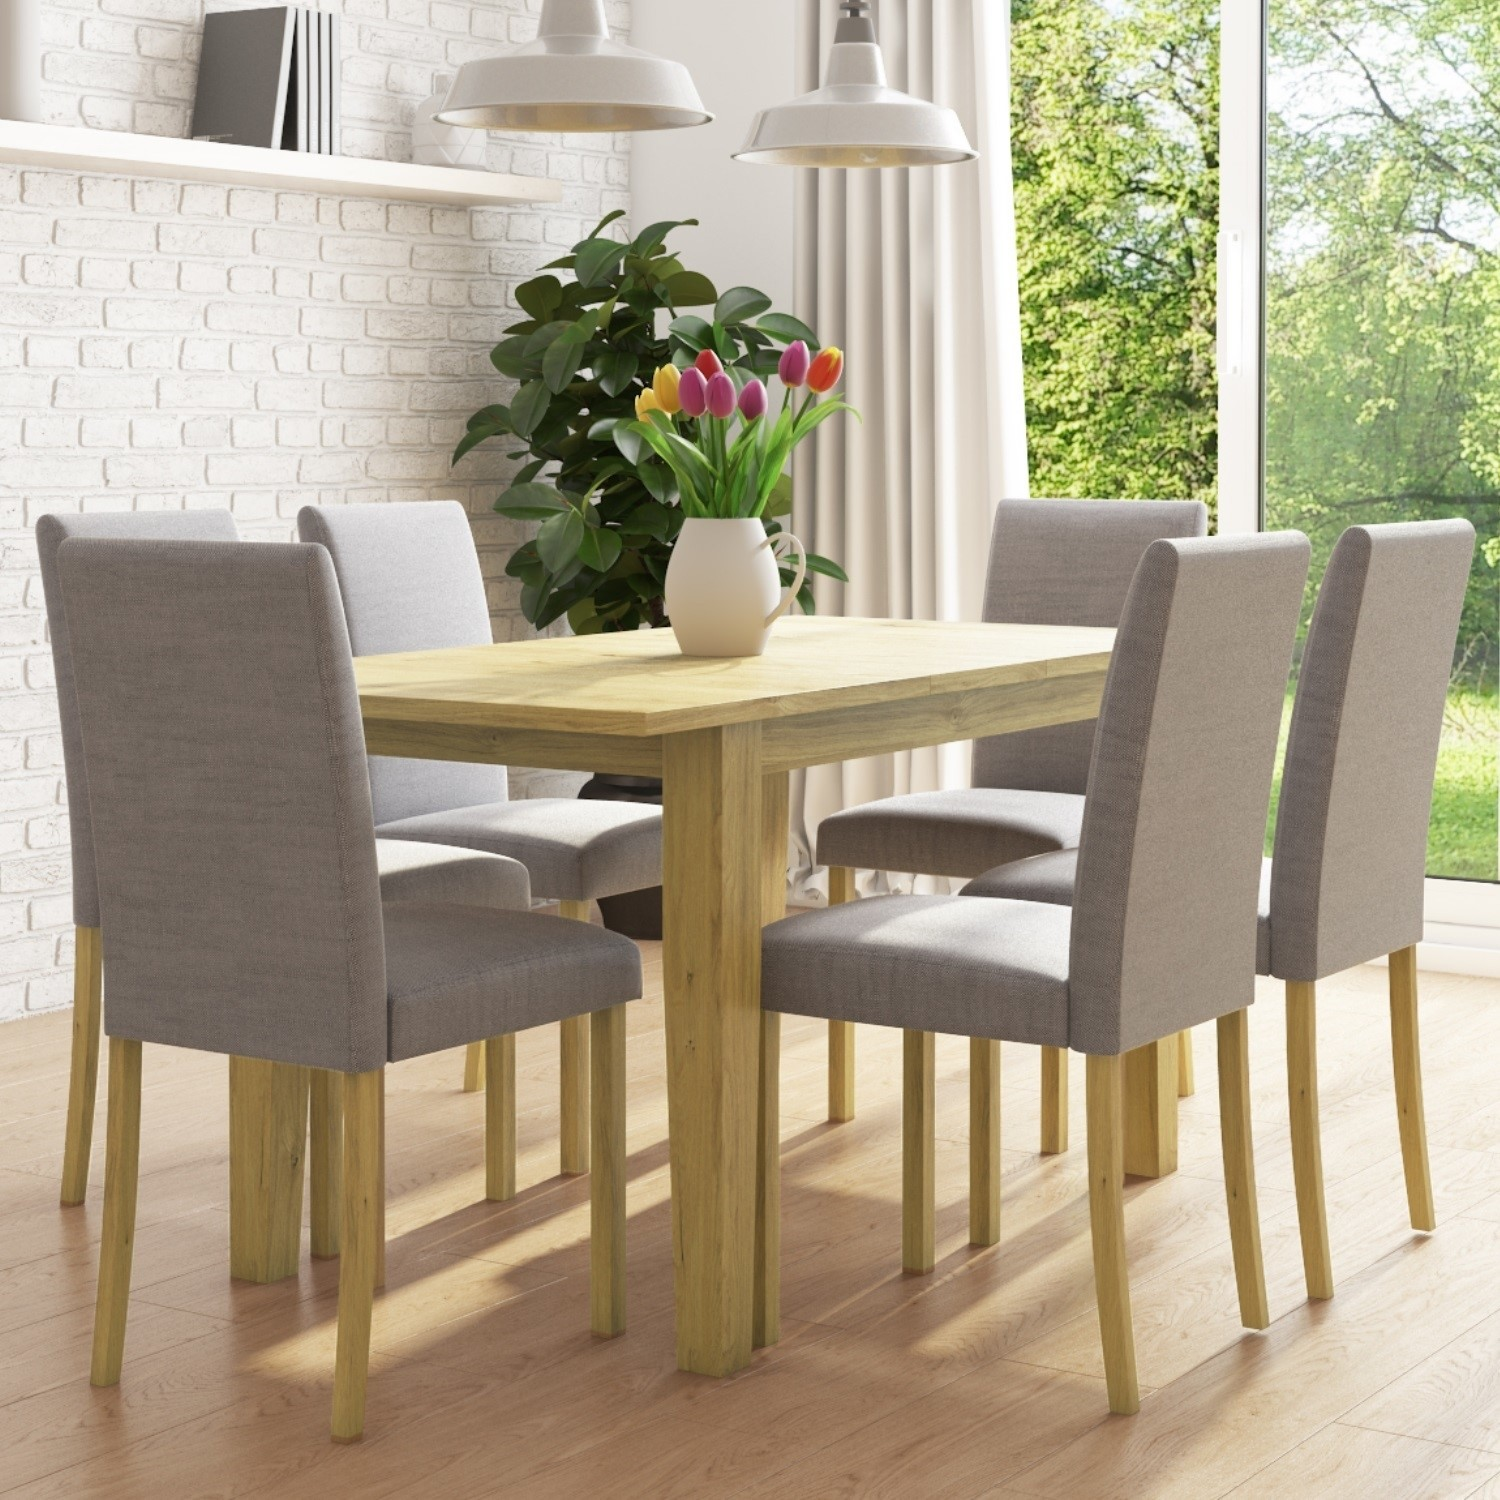 New Haven Oak Extendable Dining Set with 6 Grey Fabric Dining Chairs BUN/NHA027/70477 & New Haven Oak Extendable Dining Set with 6 Grey Fabric Dining Chairs ...